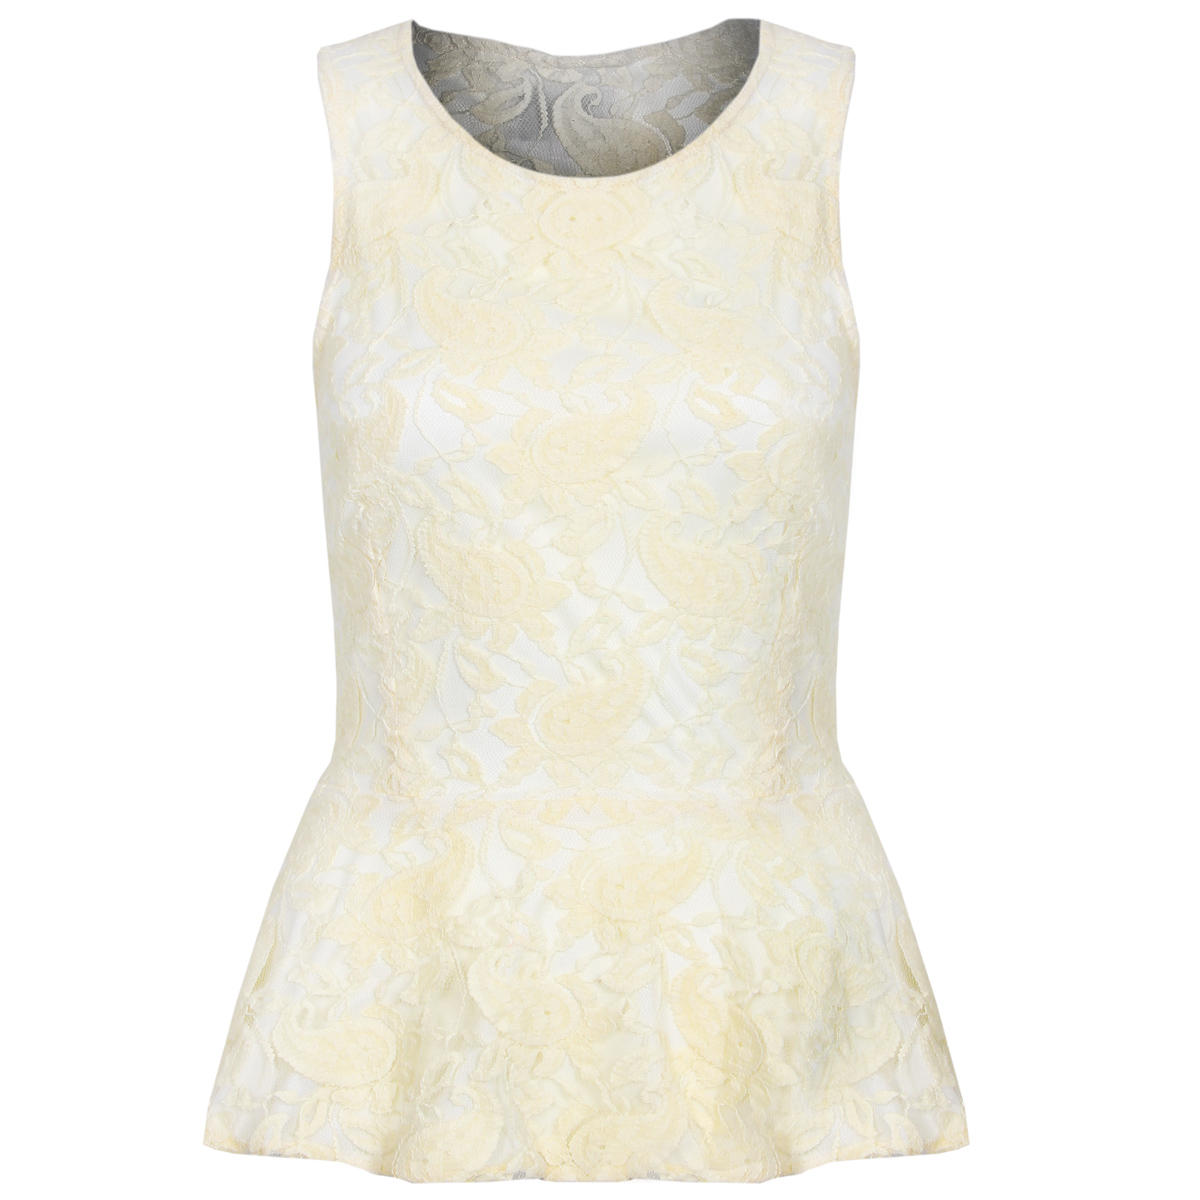 Cream Floral Lace Peplum Top Preview